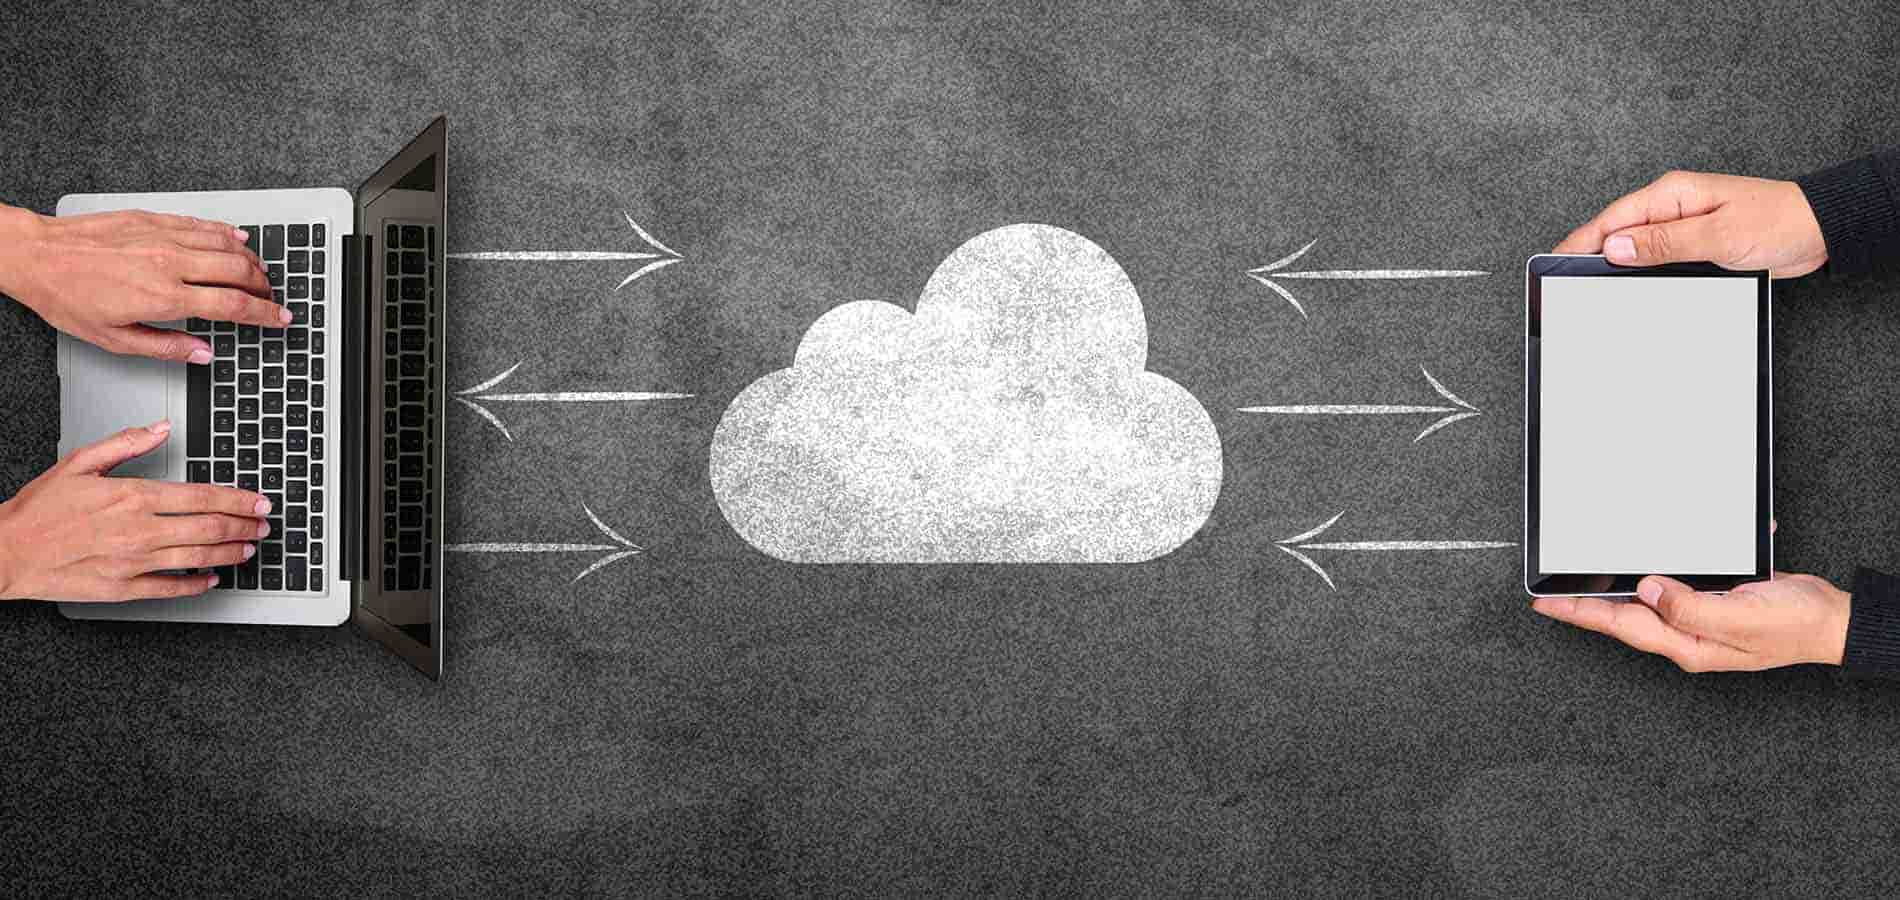 5 reasons to move your business to the Cloud